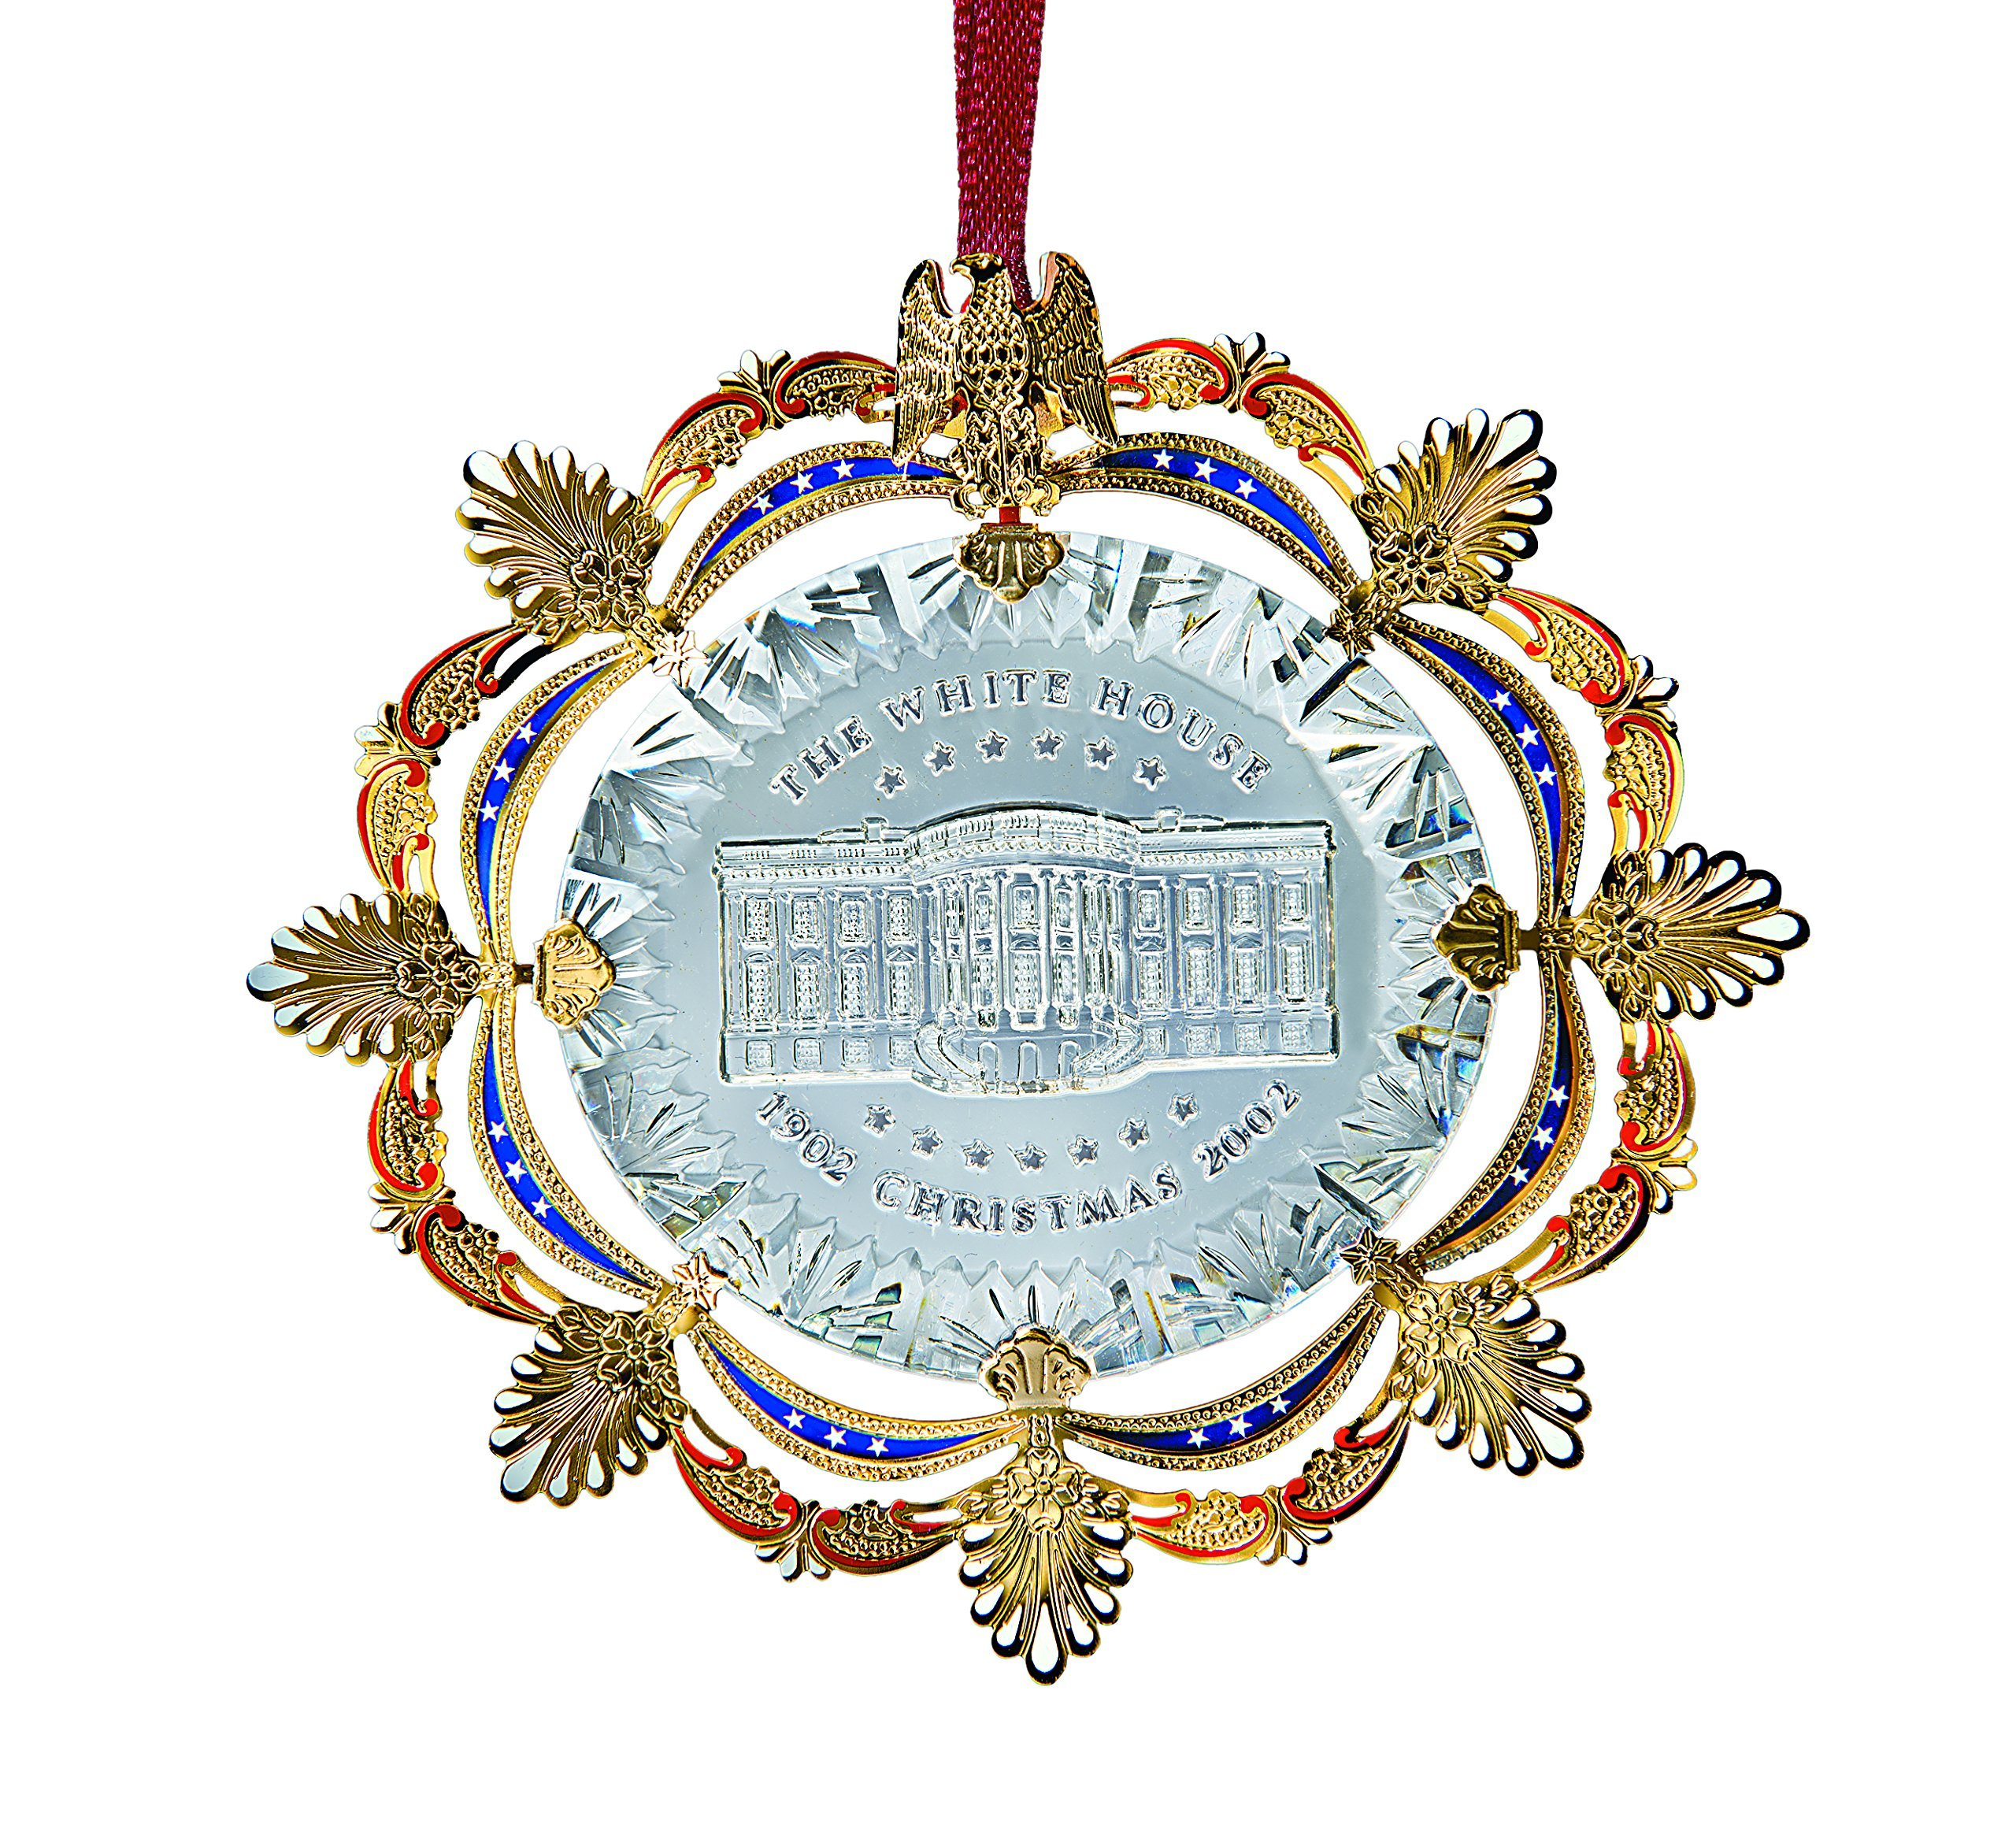 2002 White House Christmas Ornament, The East Room...